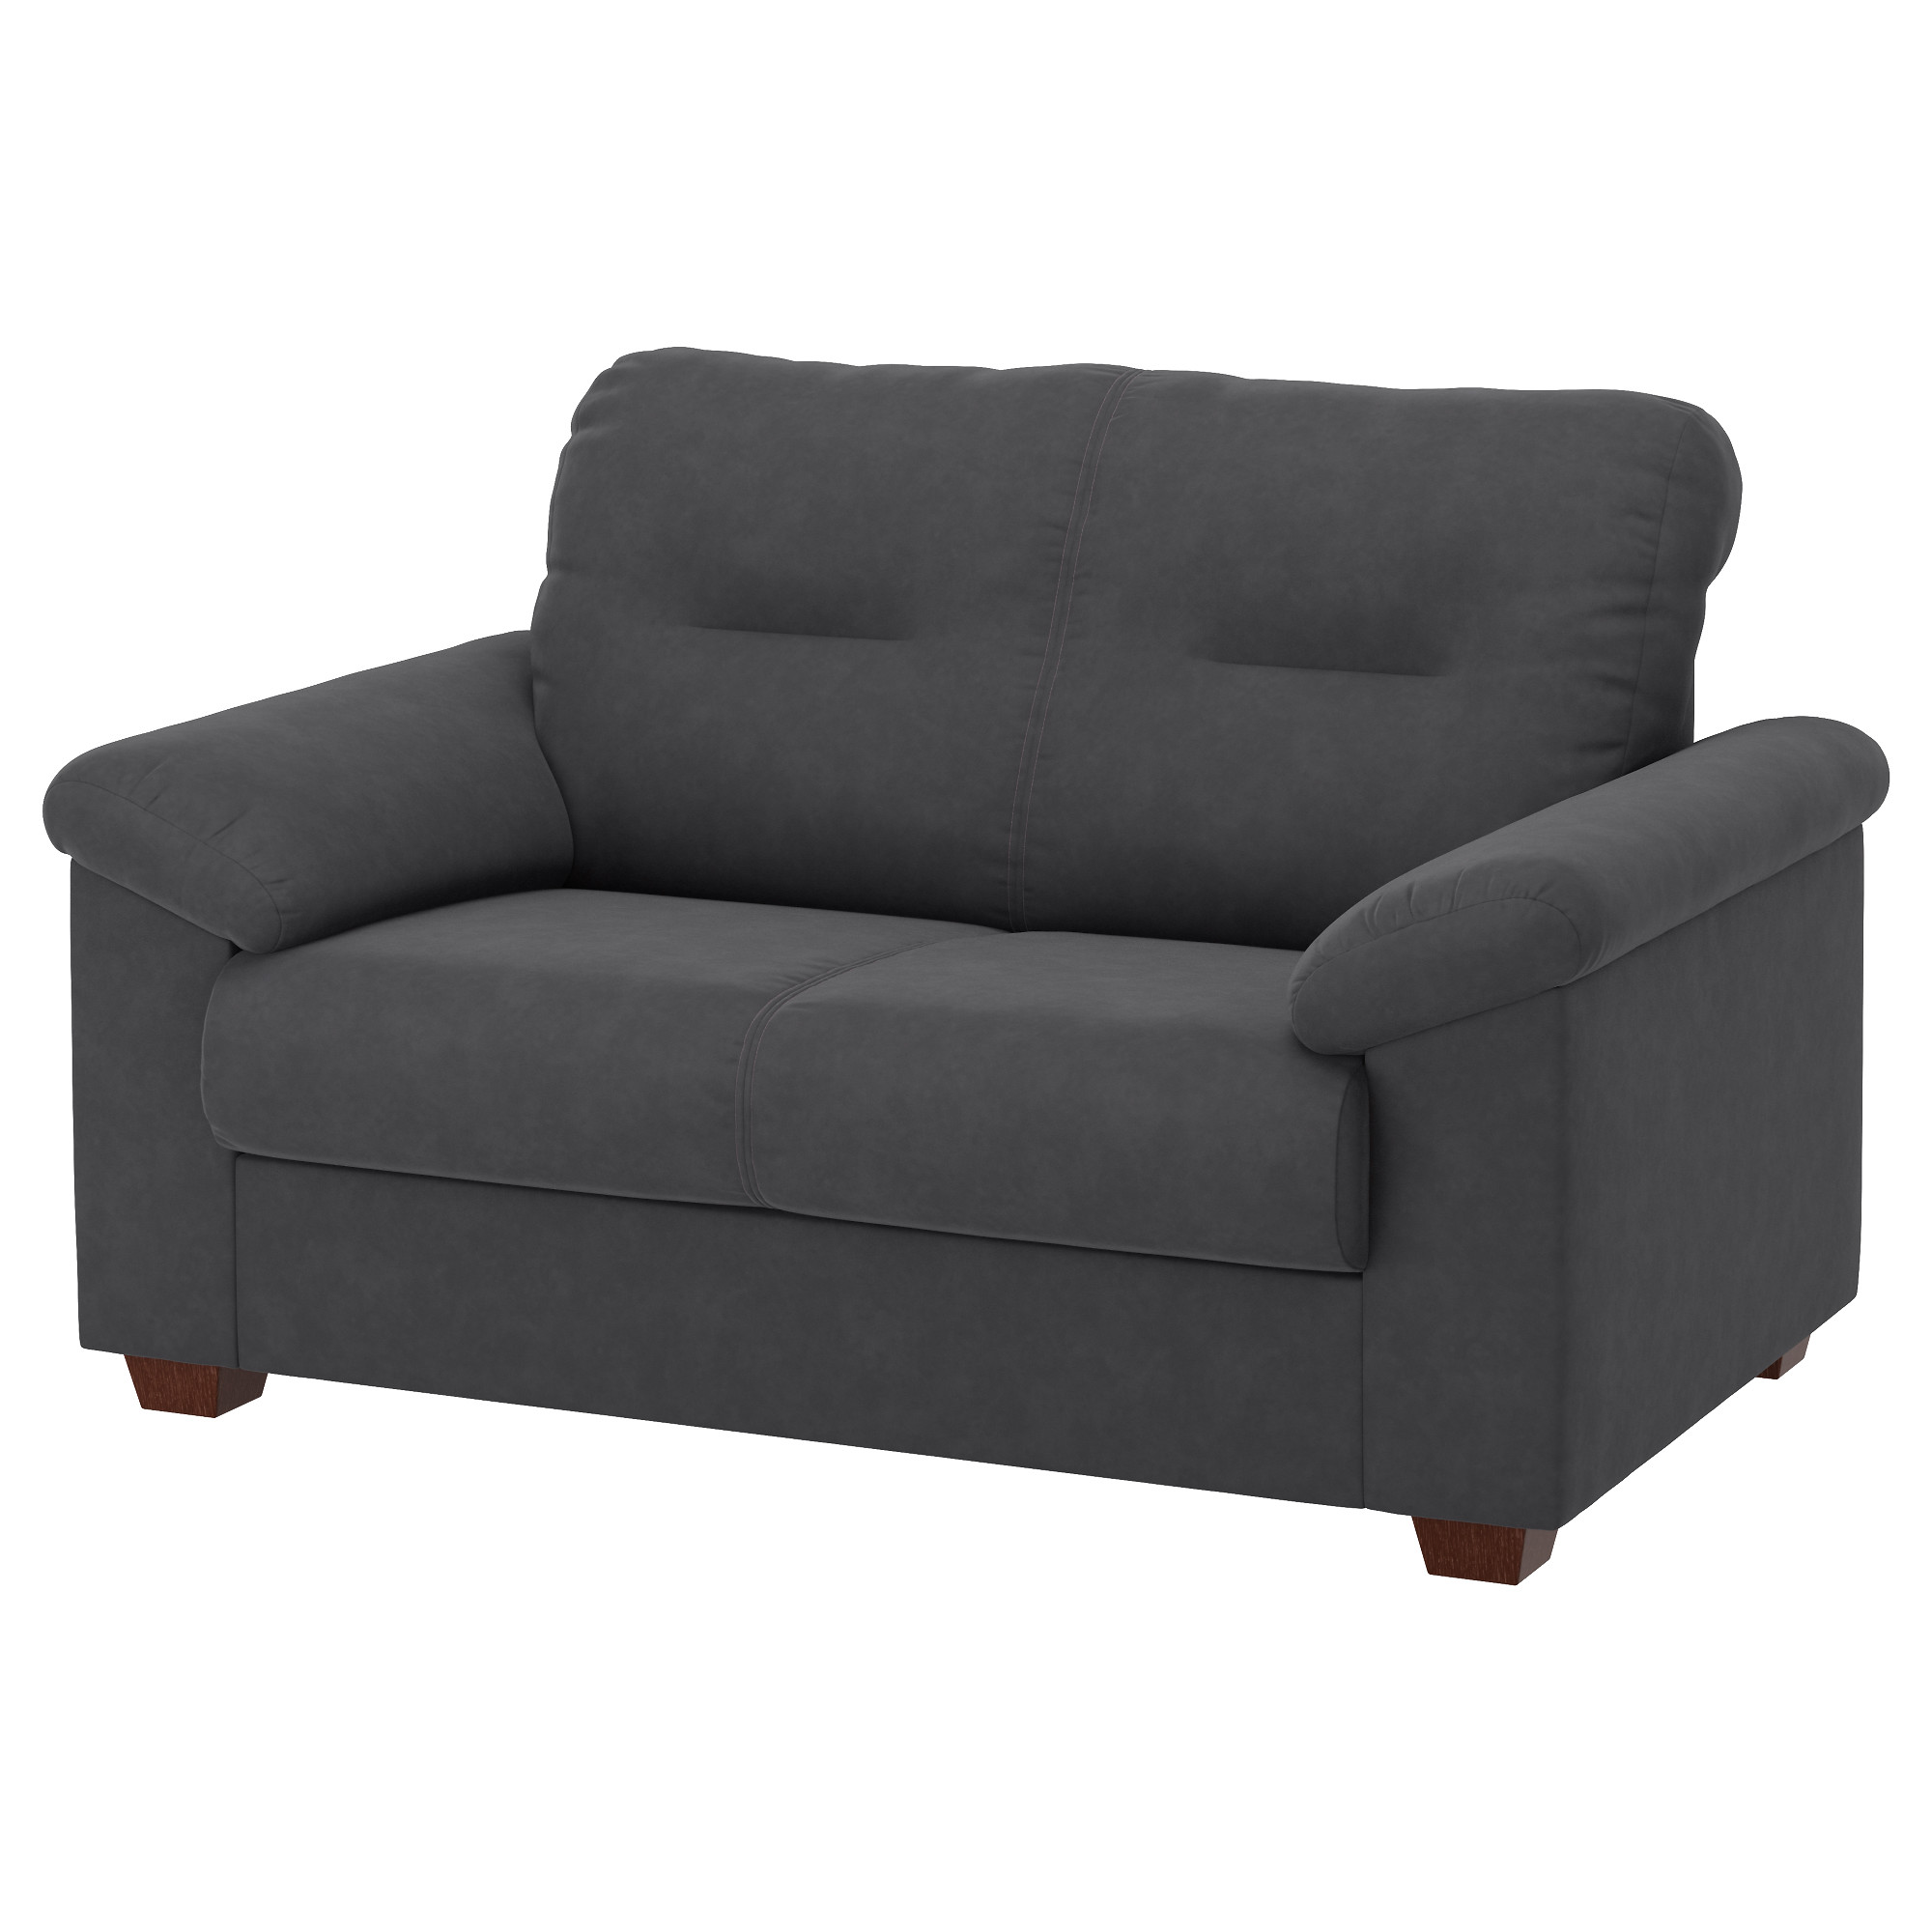 Sofas de ikea vilasund sofa bed with chaise longue - Sofa cama de espuma ...